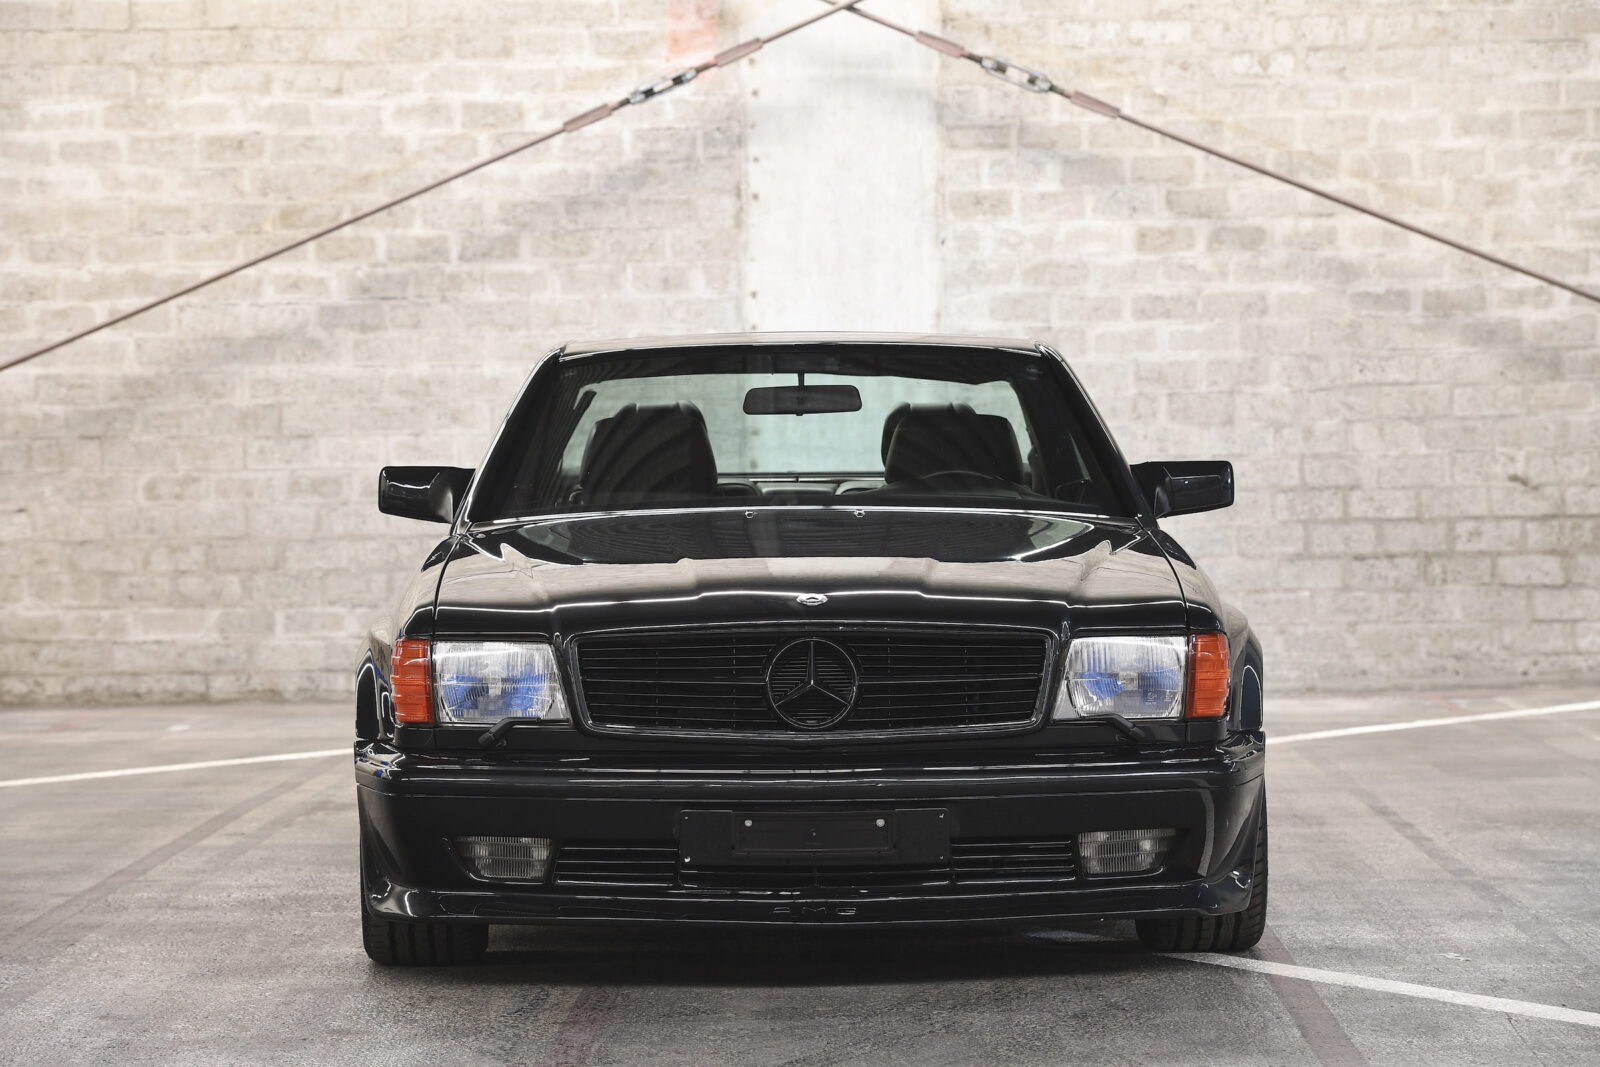 Mercedes-Benz 560 SEC AMG 6.0 Wide-Body Front